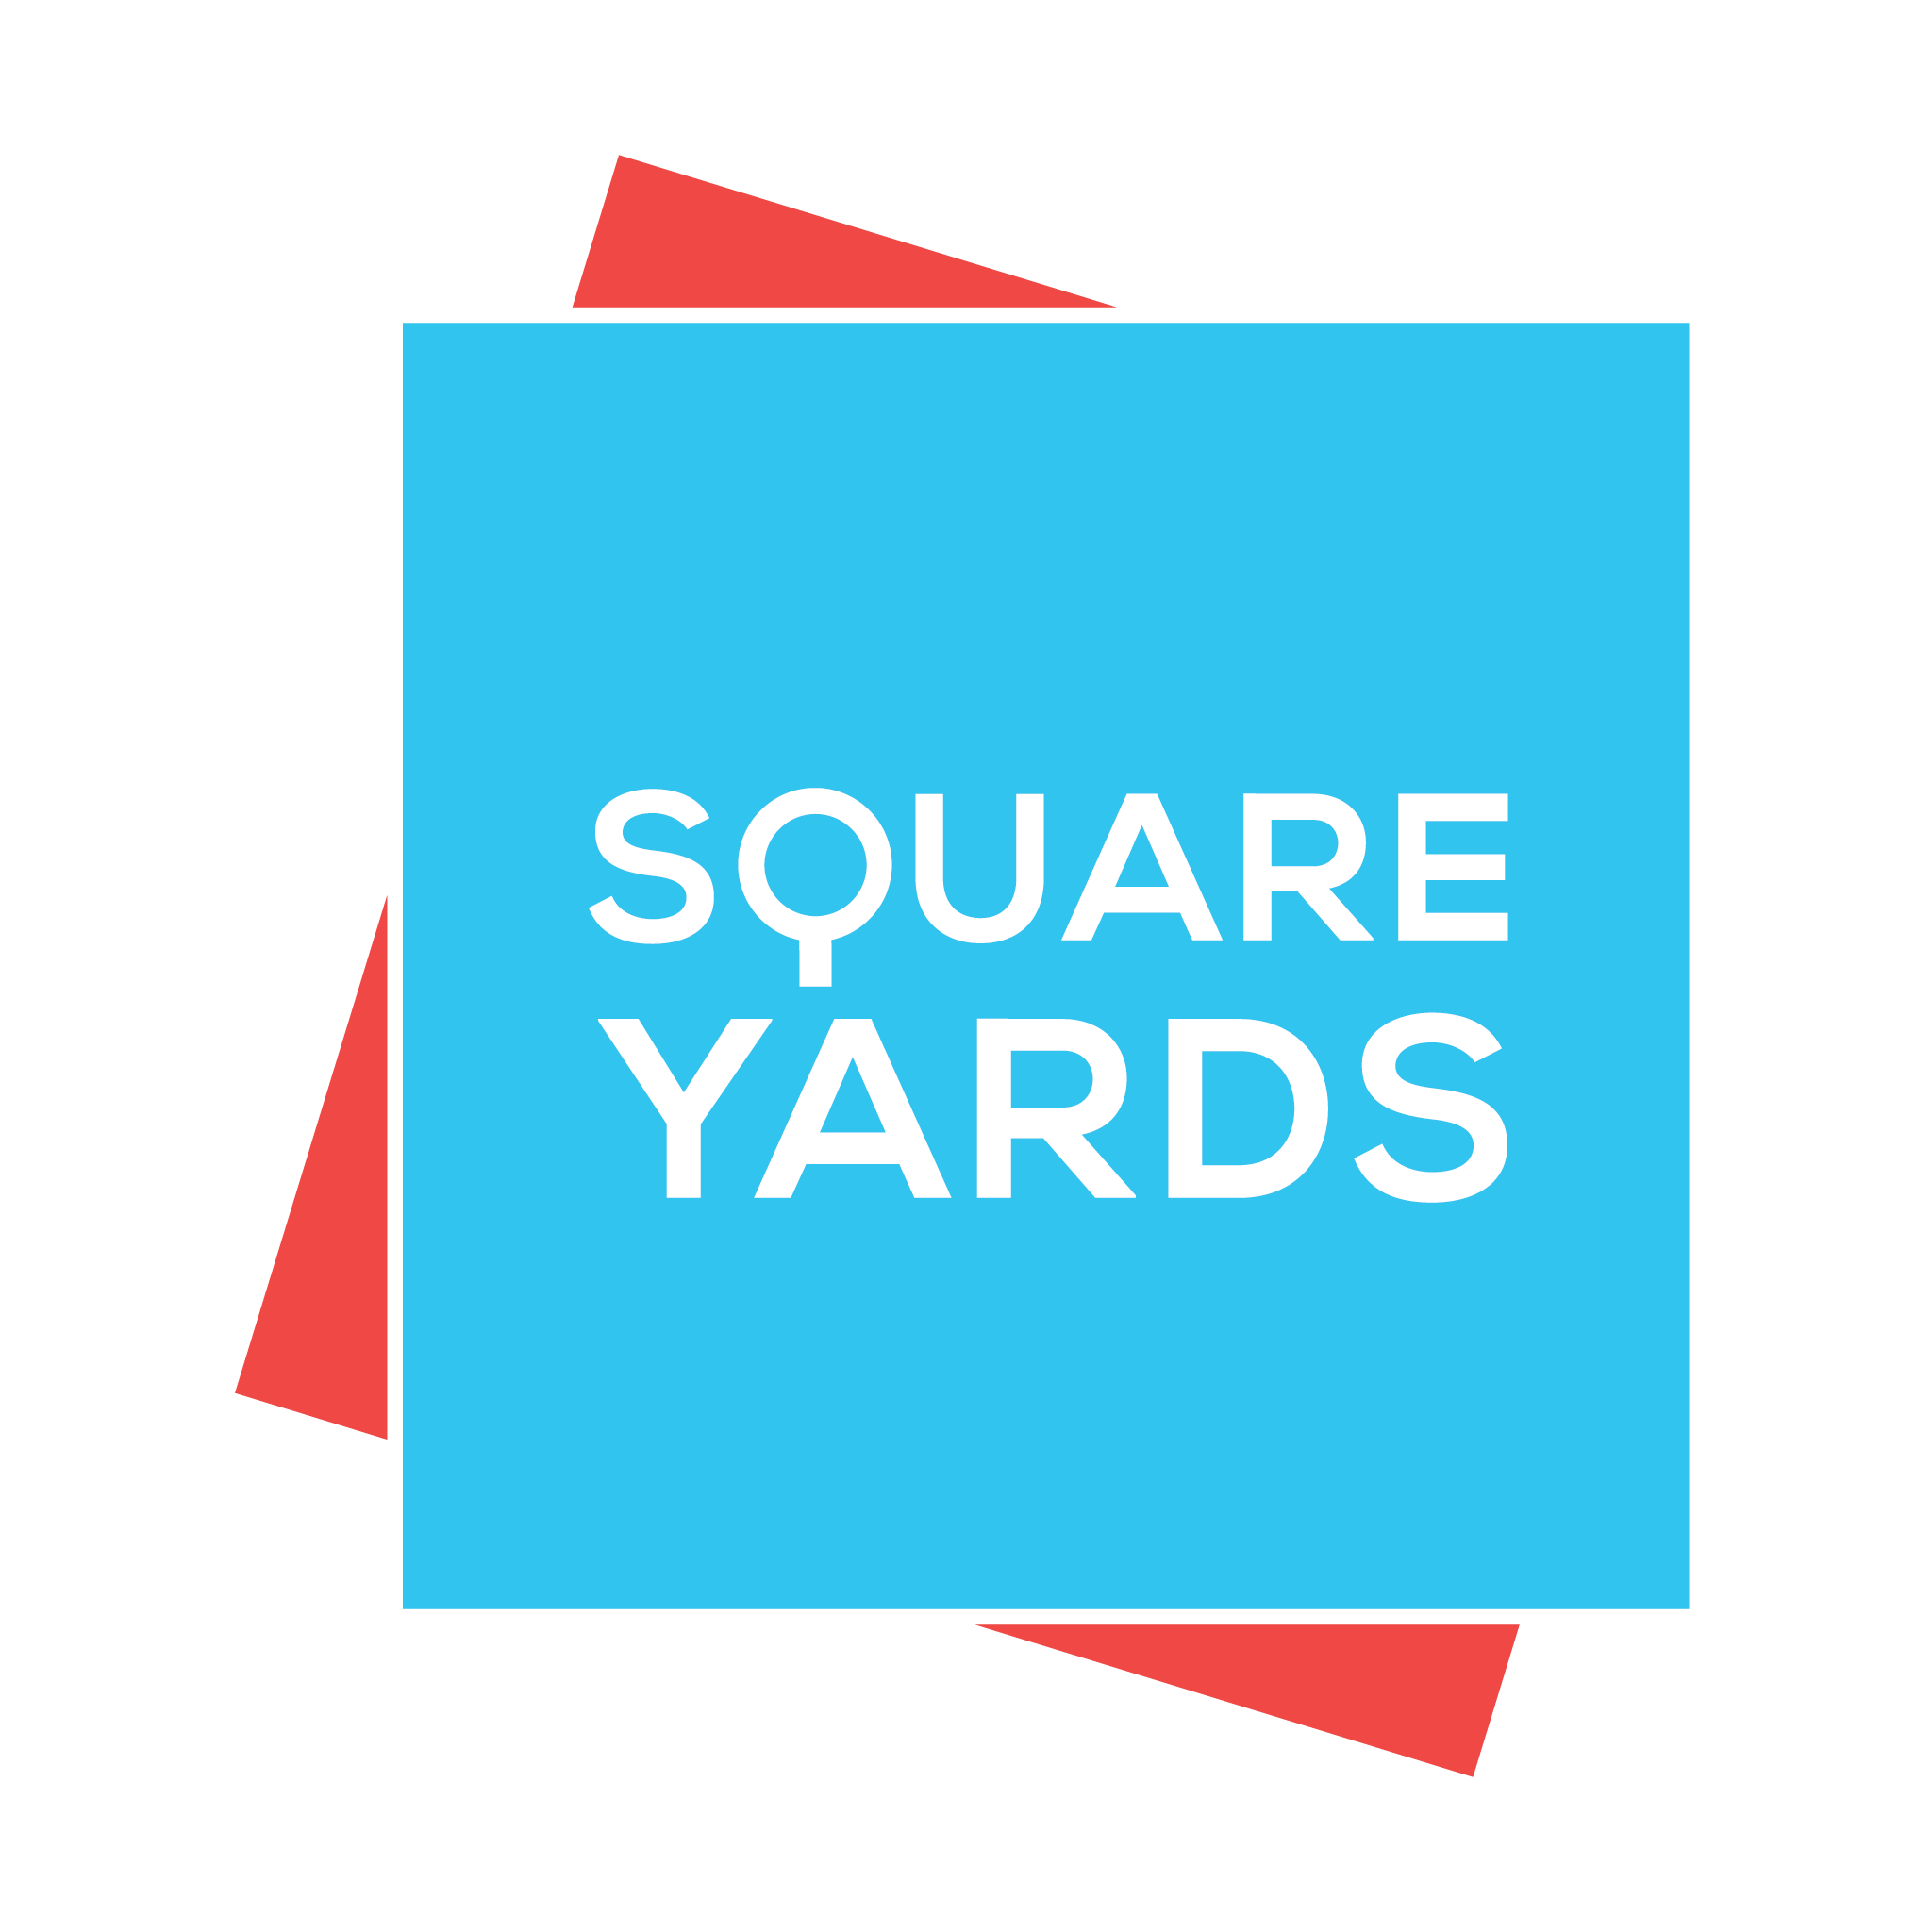 Square Yards expands its footprints in Gulf region - Track2Realty